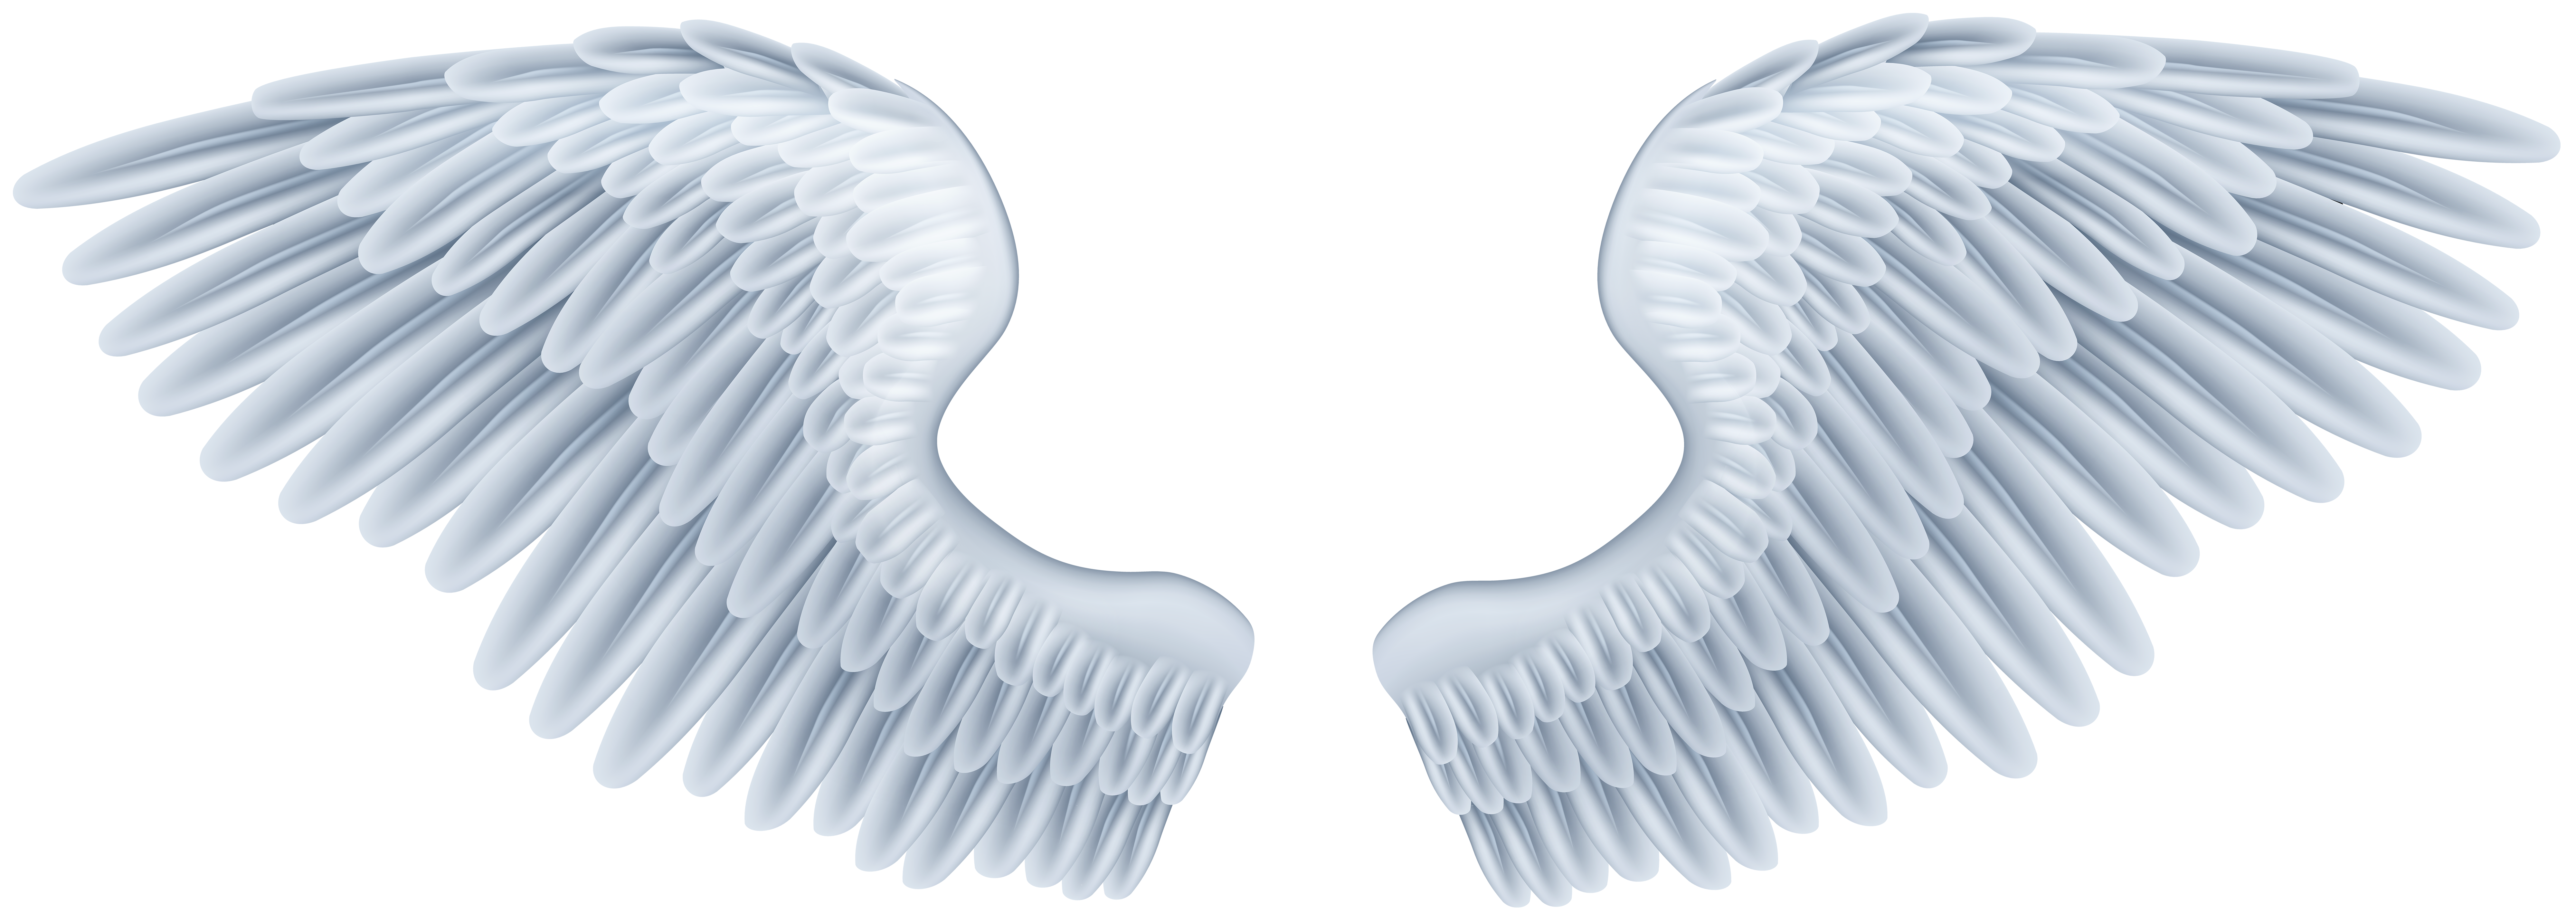 Wing clipart angel wing. Wings png clip art